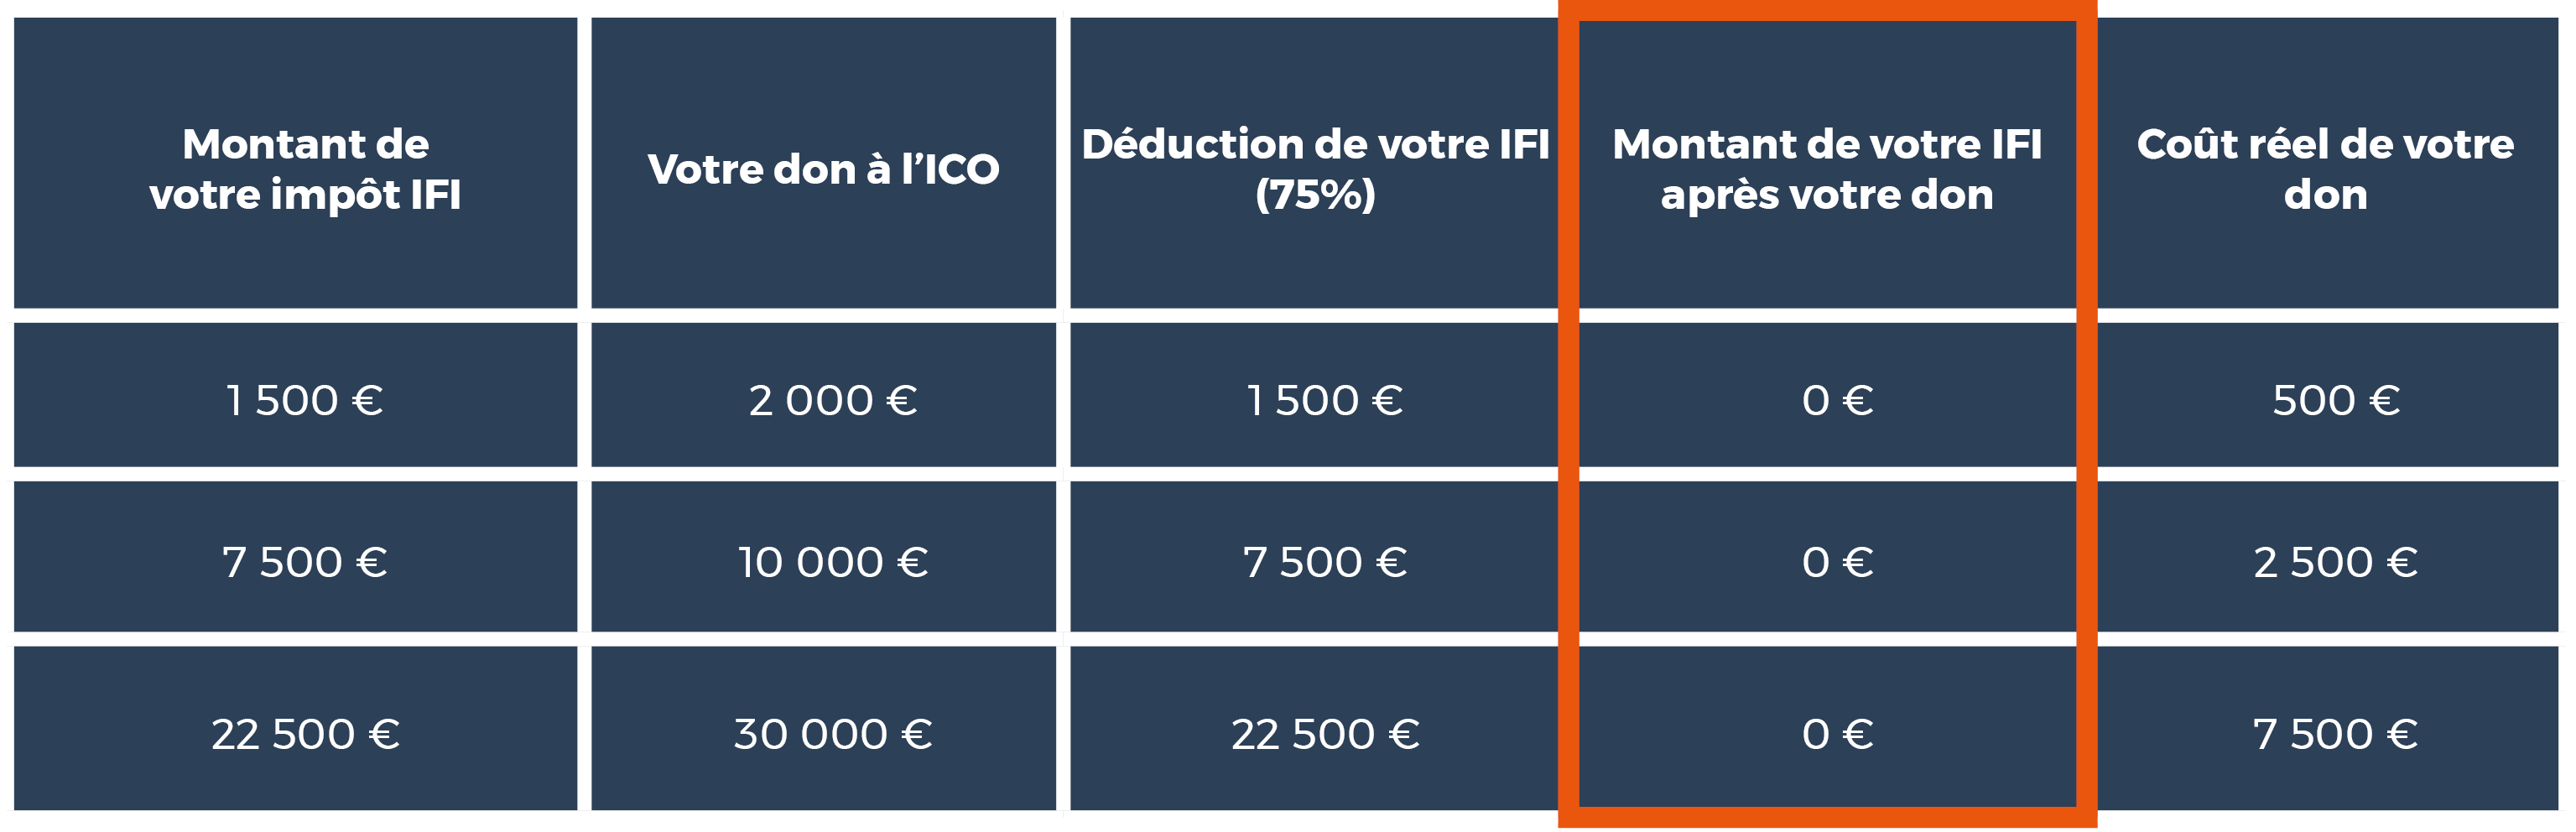 Déductions IFI